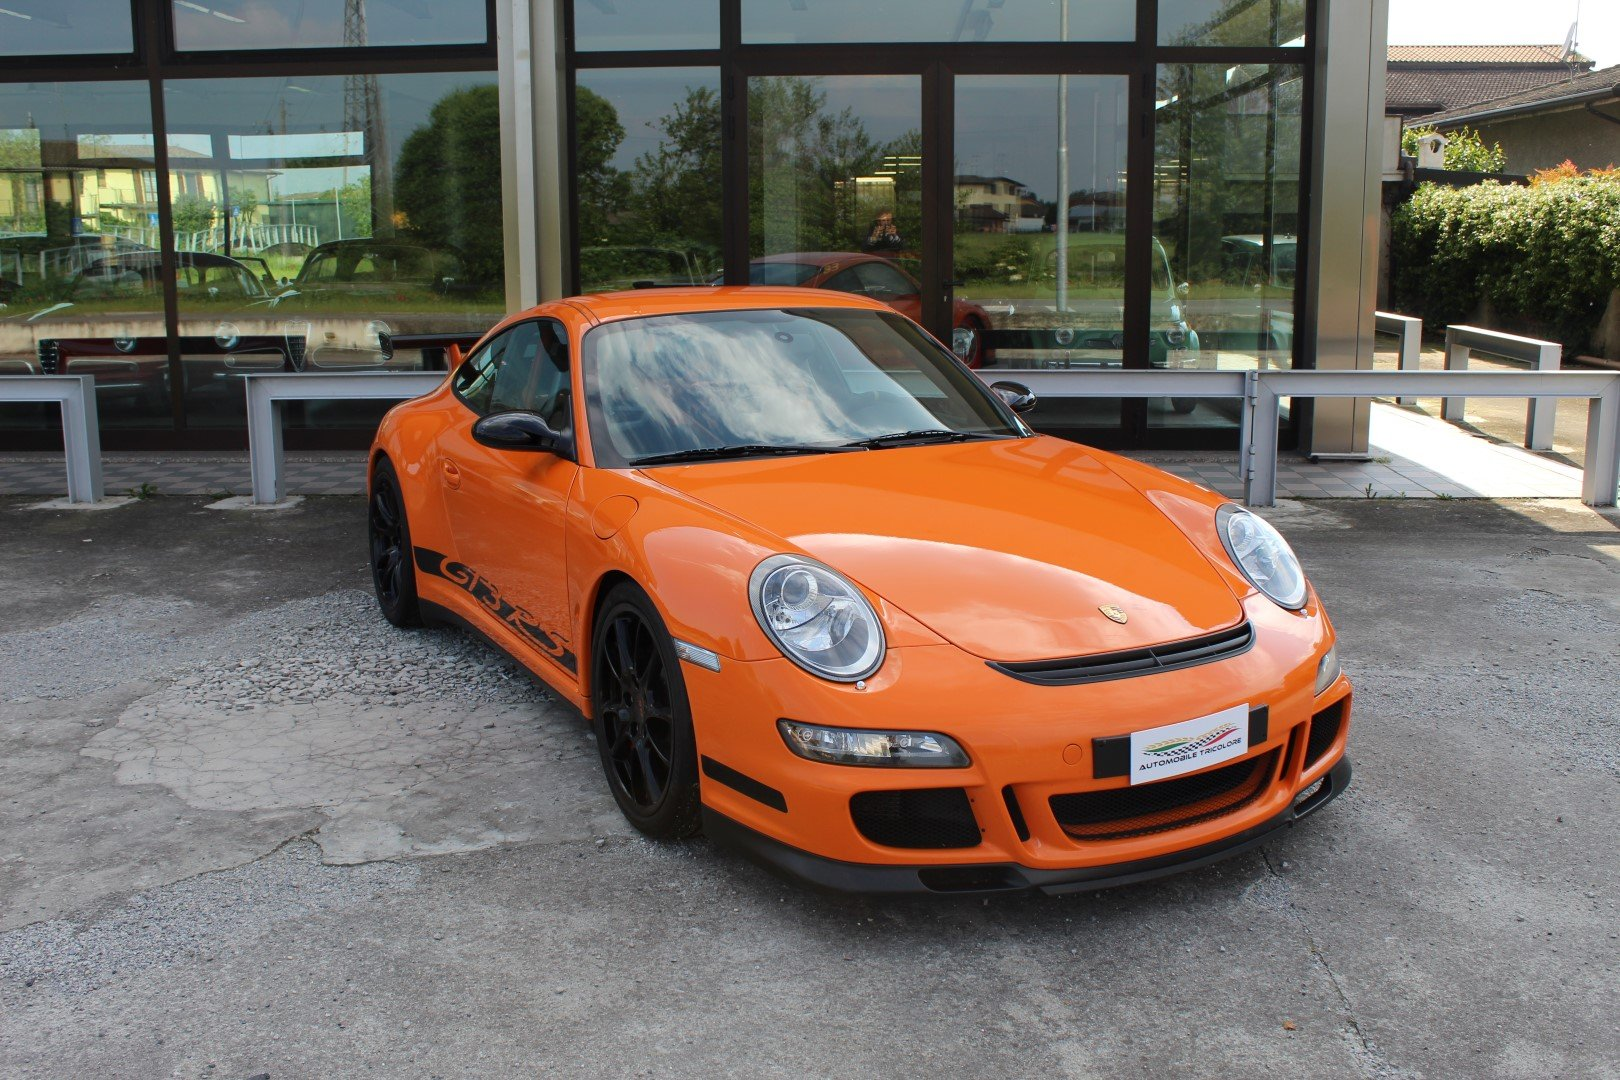 2007 Porsche 911 997 GT3 RS never repaint - first paint For Sale (picture 1 of 6)